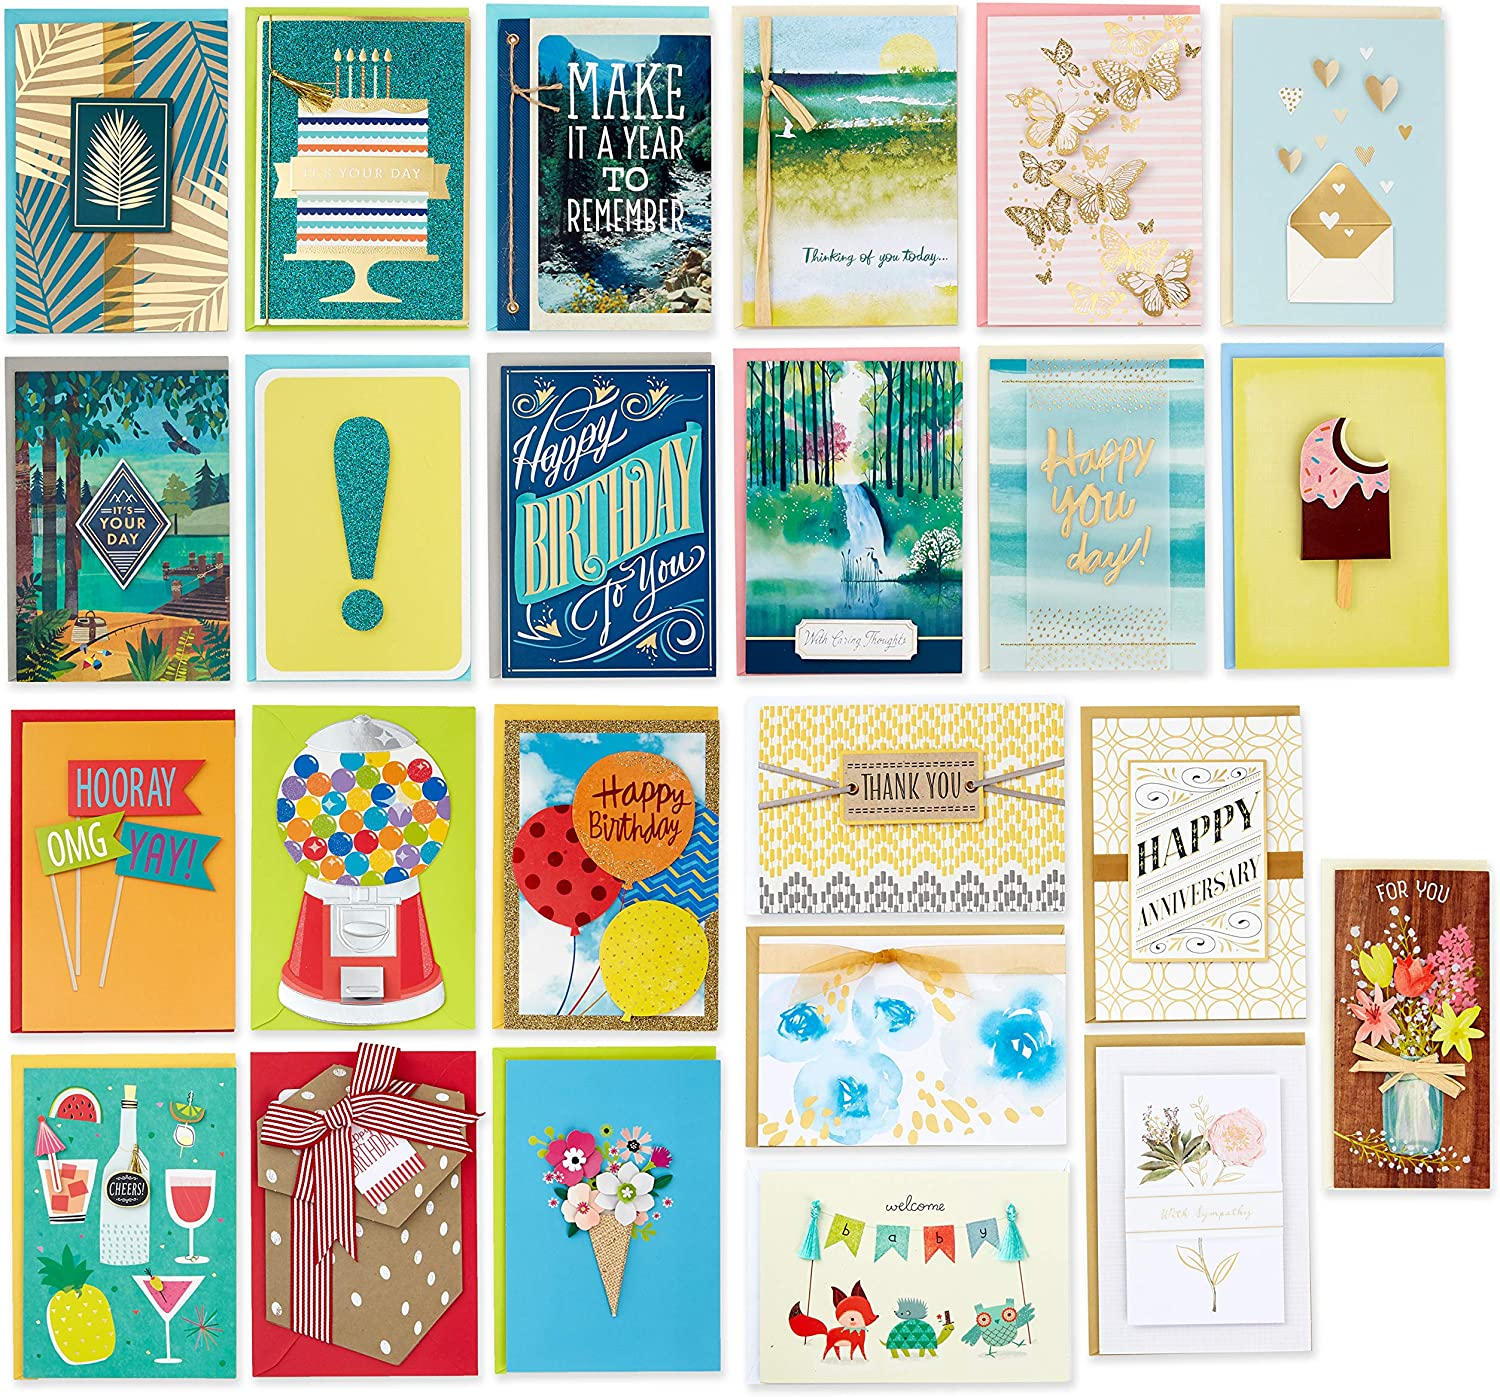 Hallmark Pack of 24 Handmade Assorted Boxed Greeting Cards, Modern Greenery—Birthday Cards, Baby Shower Cards, Wedding Cards, Sympathy Cards, Thinking of You Cards, Thank You Cards